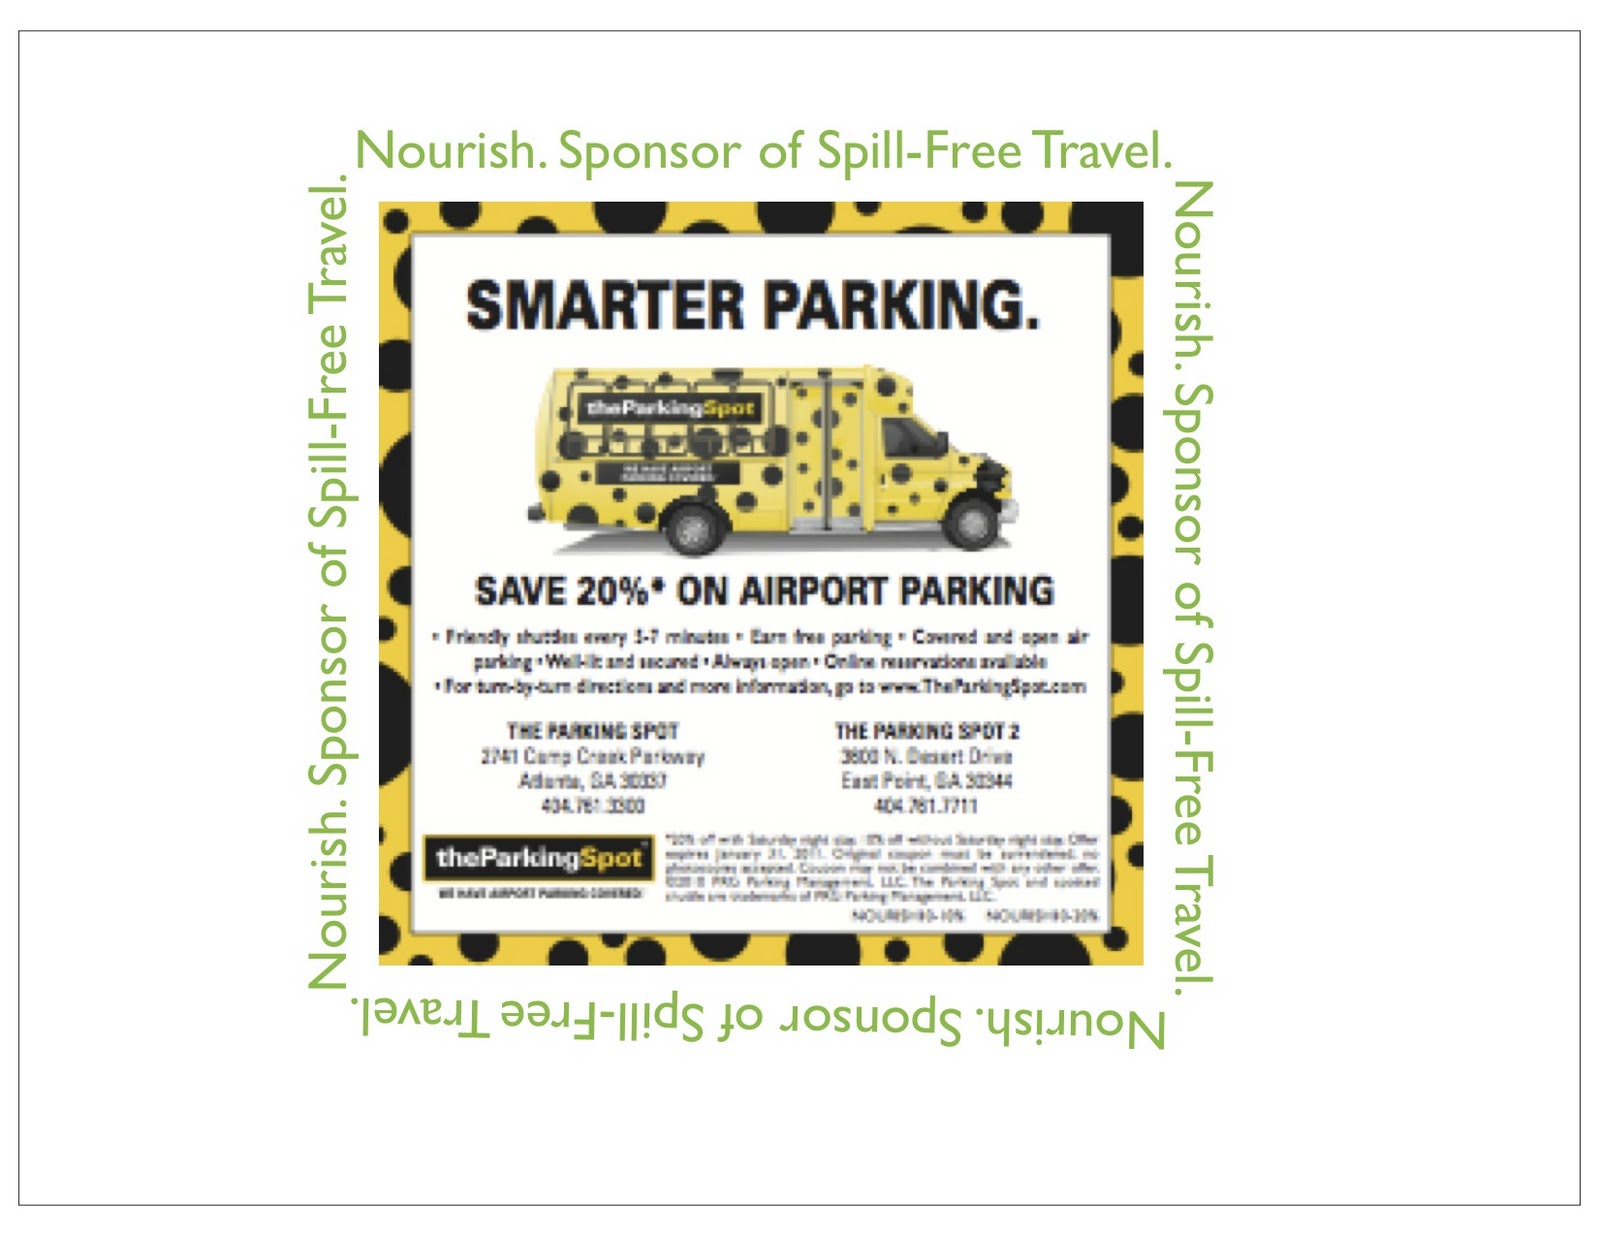 San diego airport parking discount coupon